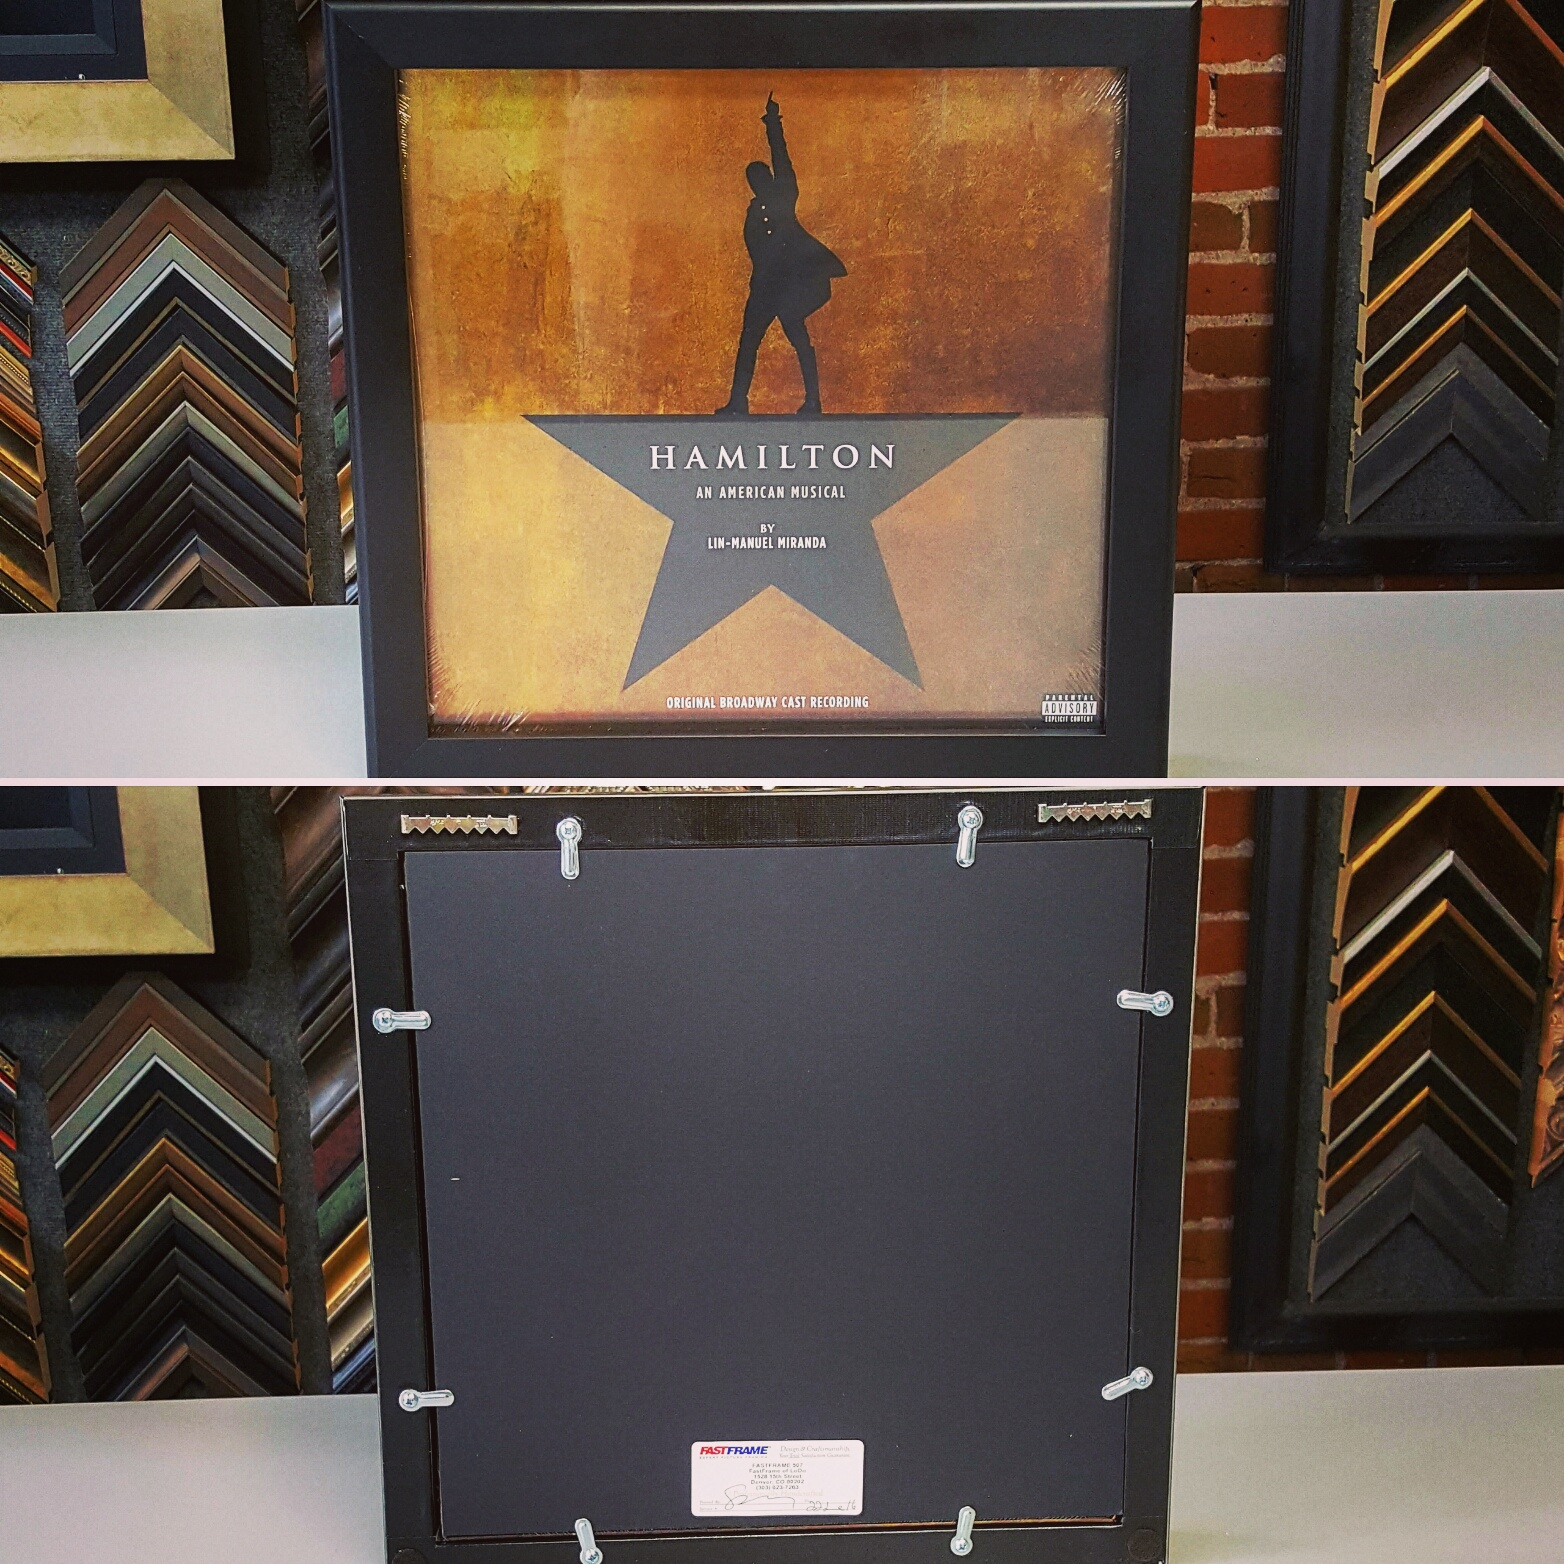 Custom Framed Albums & LPs Denver